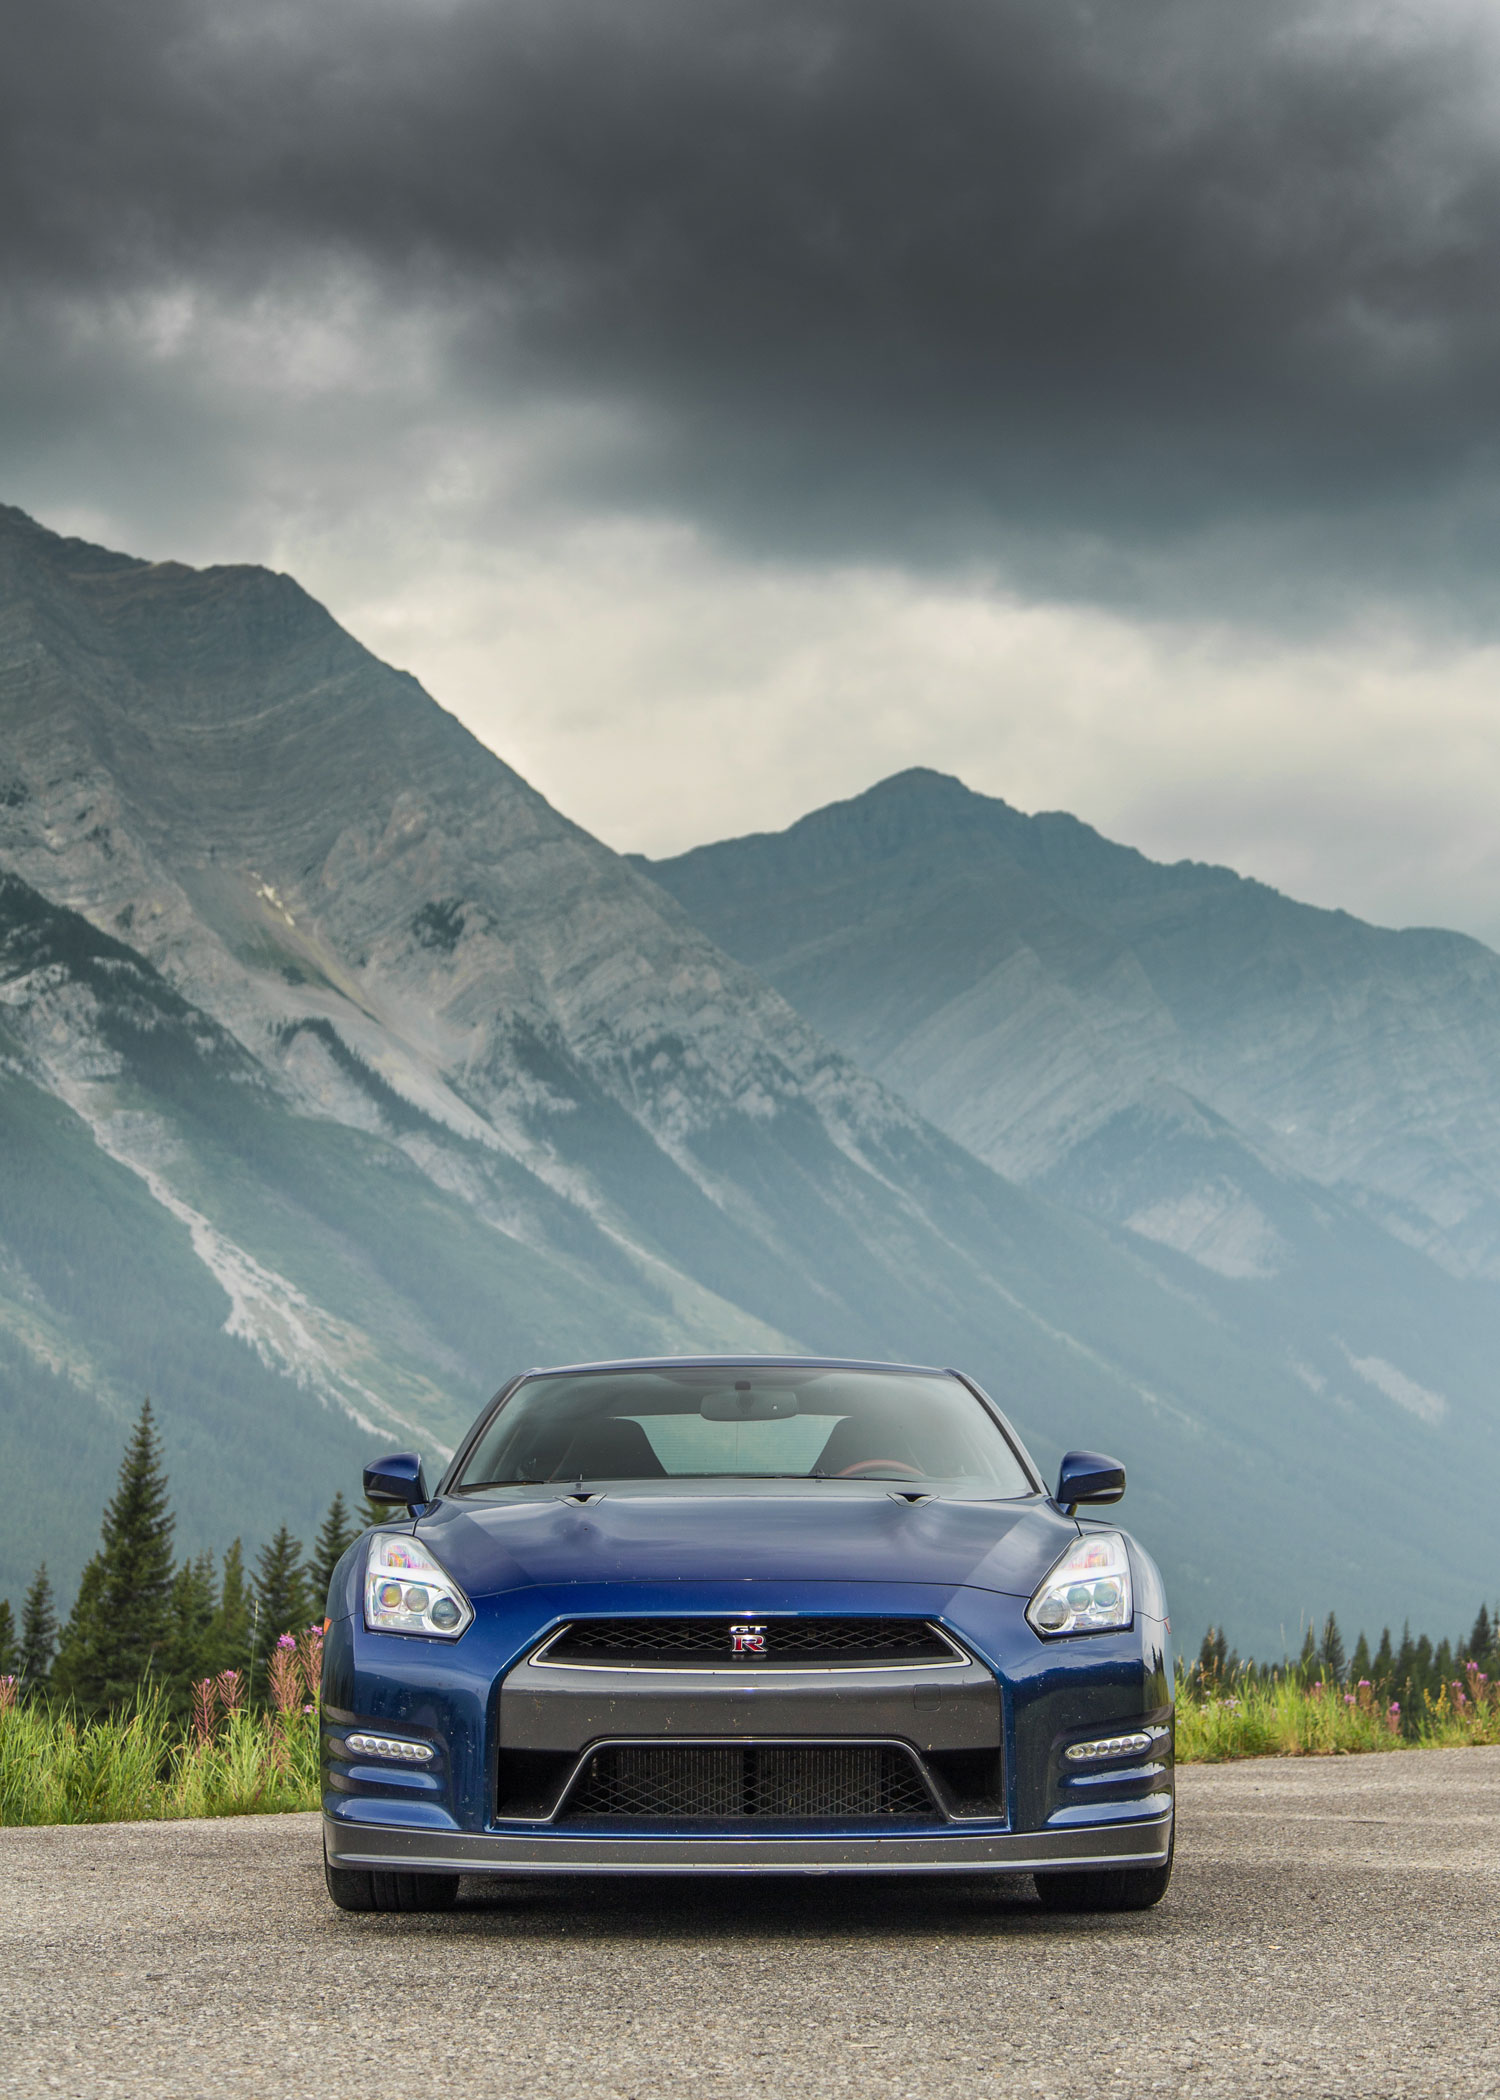 epic drives exploring alberta canada in a 2015 nissan gt r. Black Bedroom Furniture Sets. Home Design Ideas